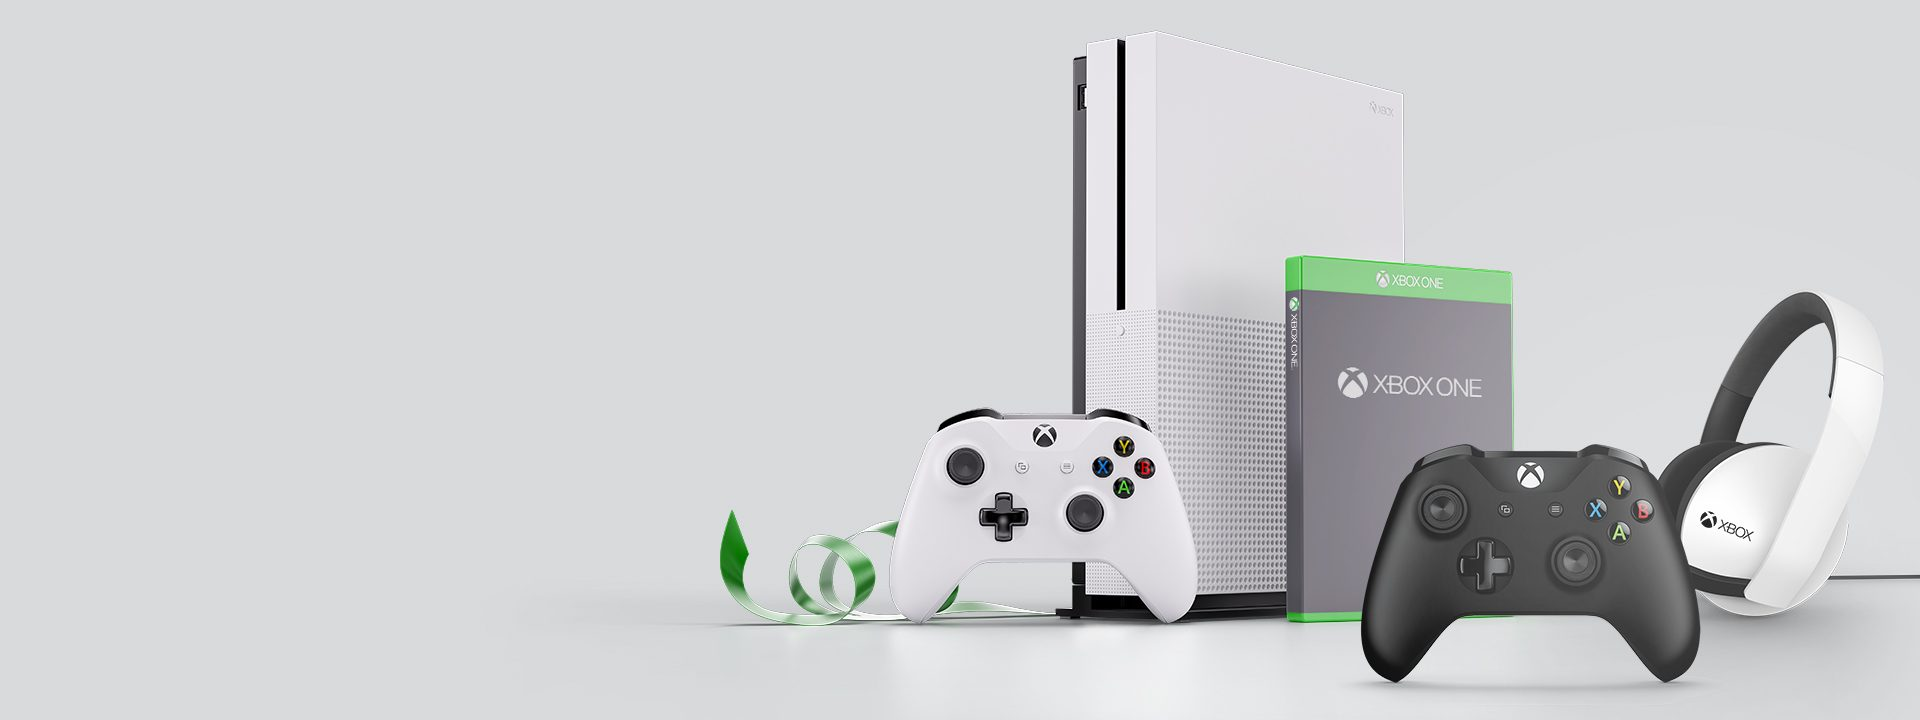 Xbox Black Friday 2017